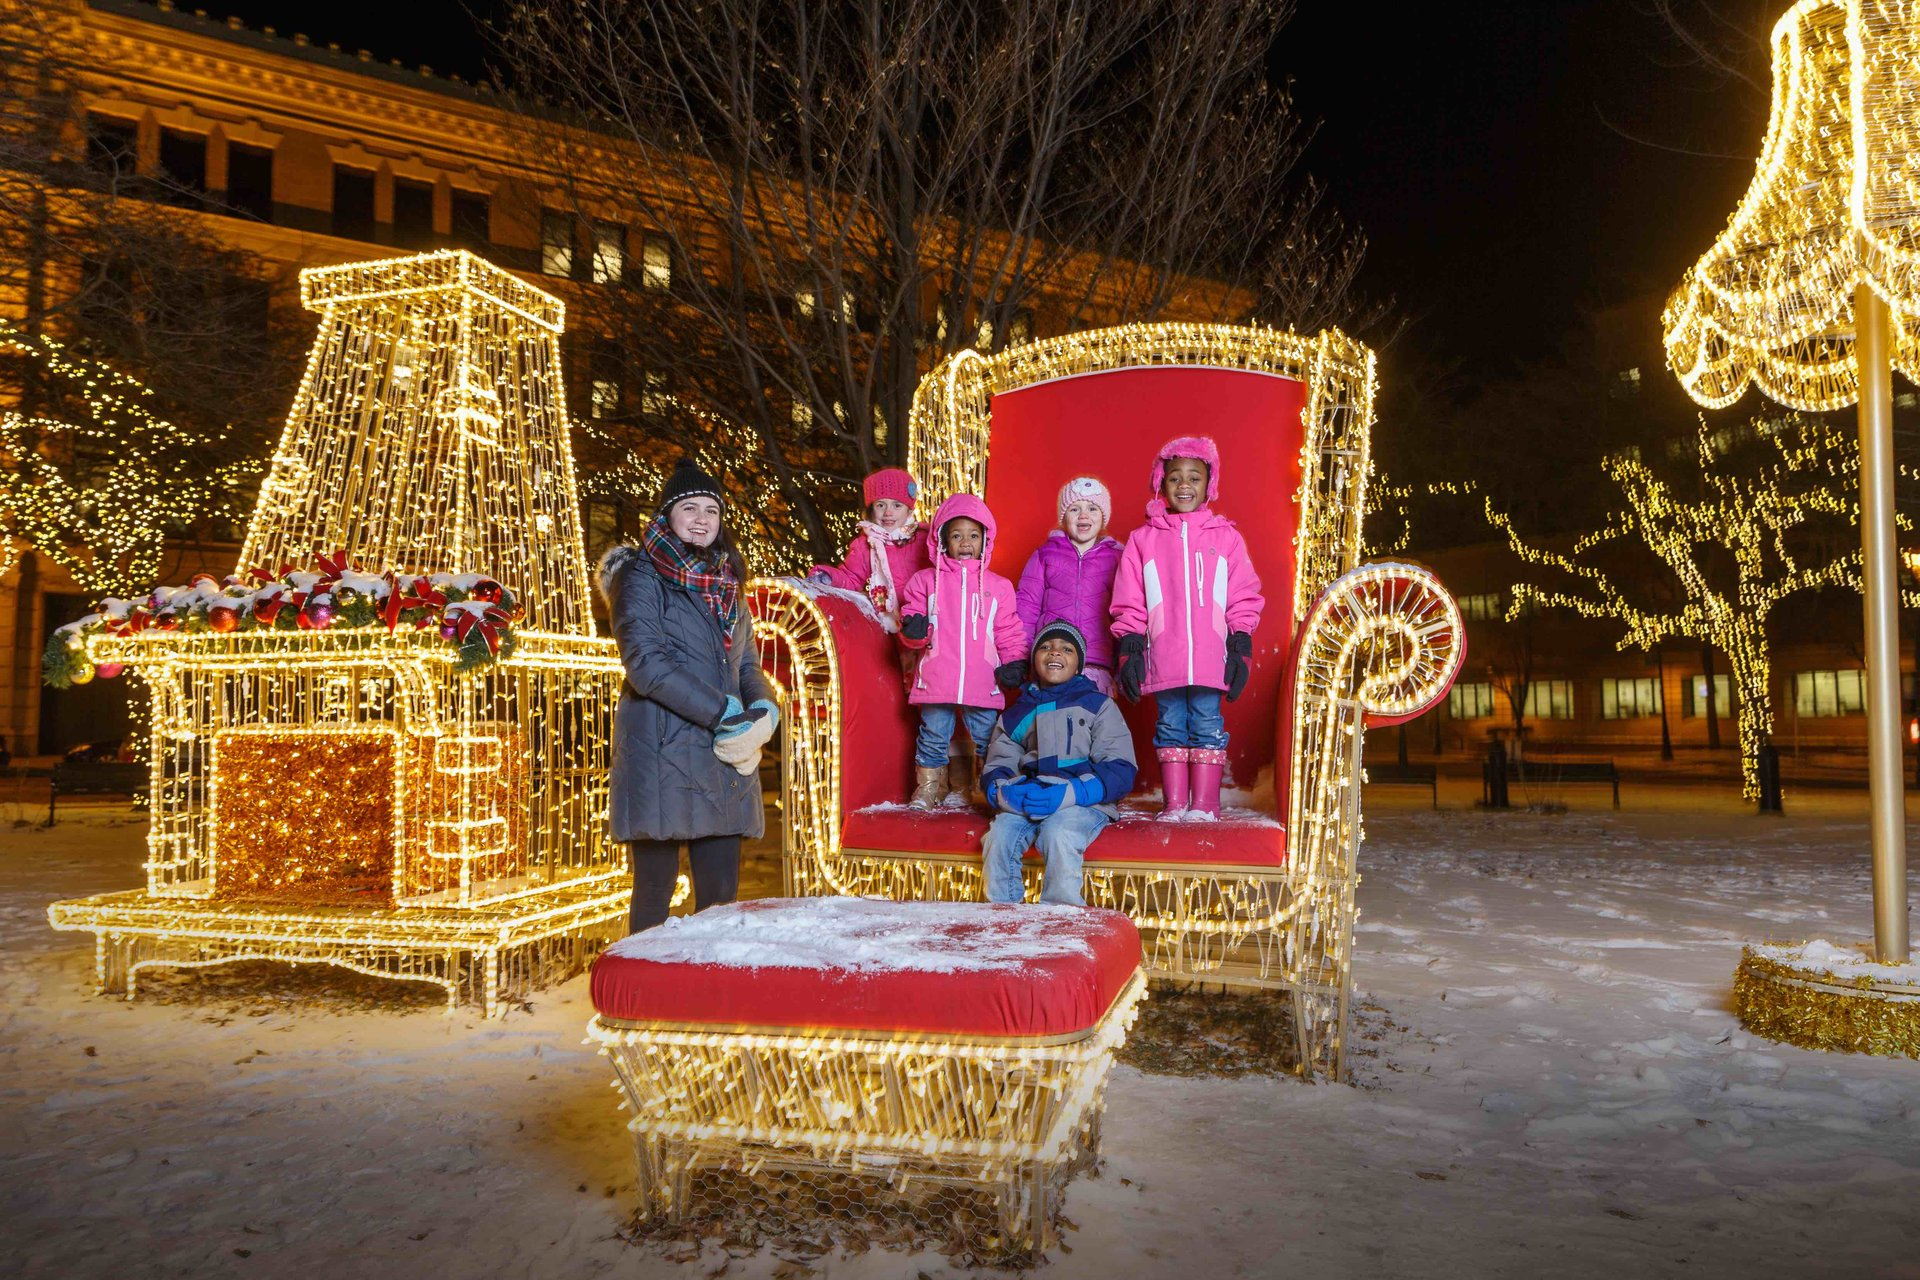 Zeidler Union Square is one of three parks decorated for the Milwaukee Holiday Lights Festival. 2020